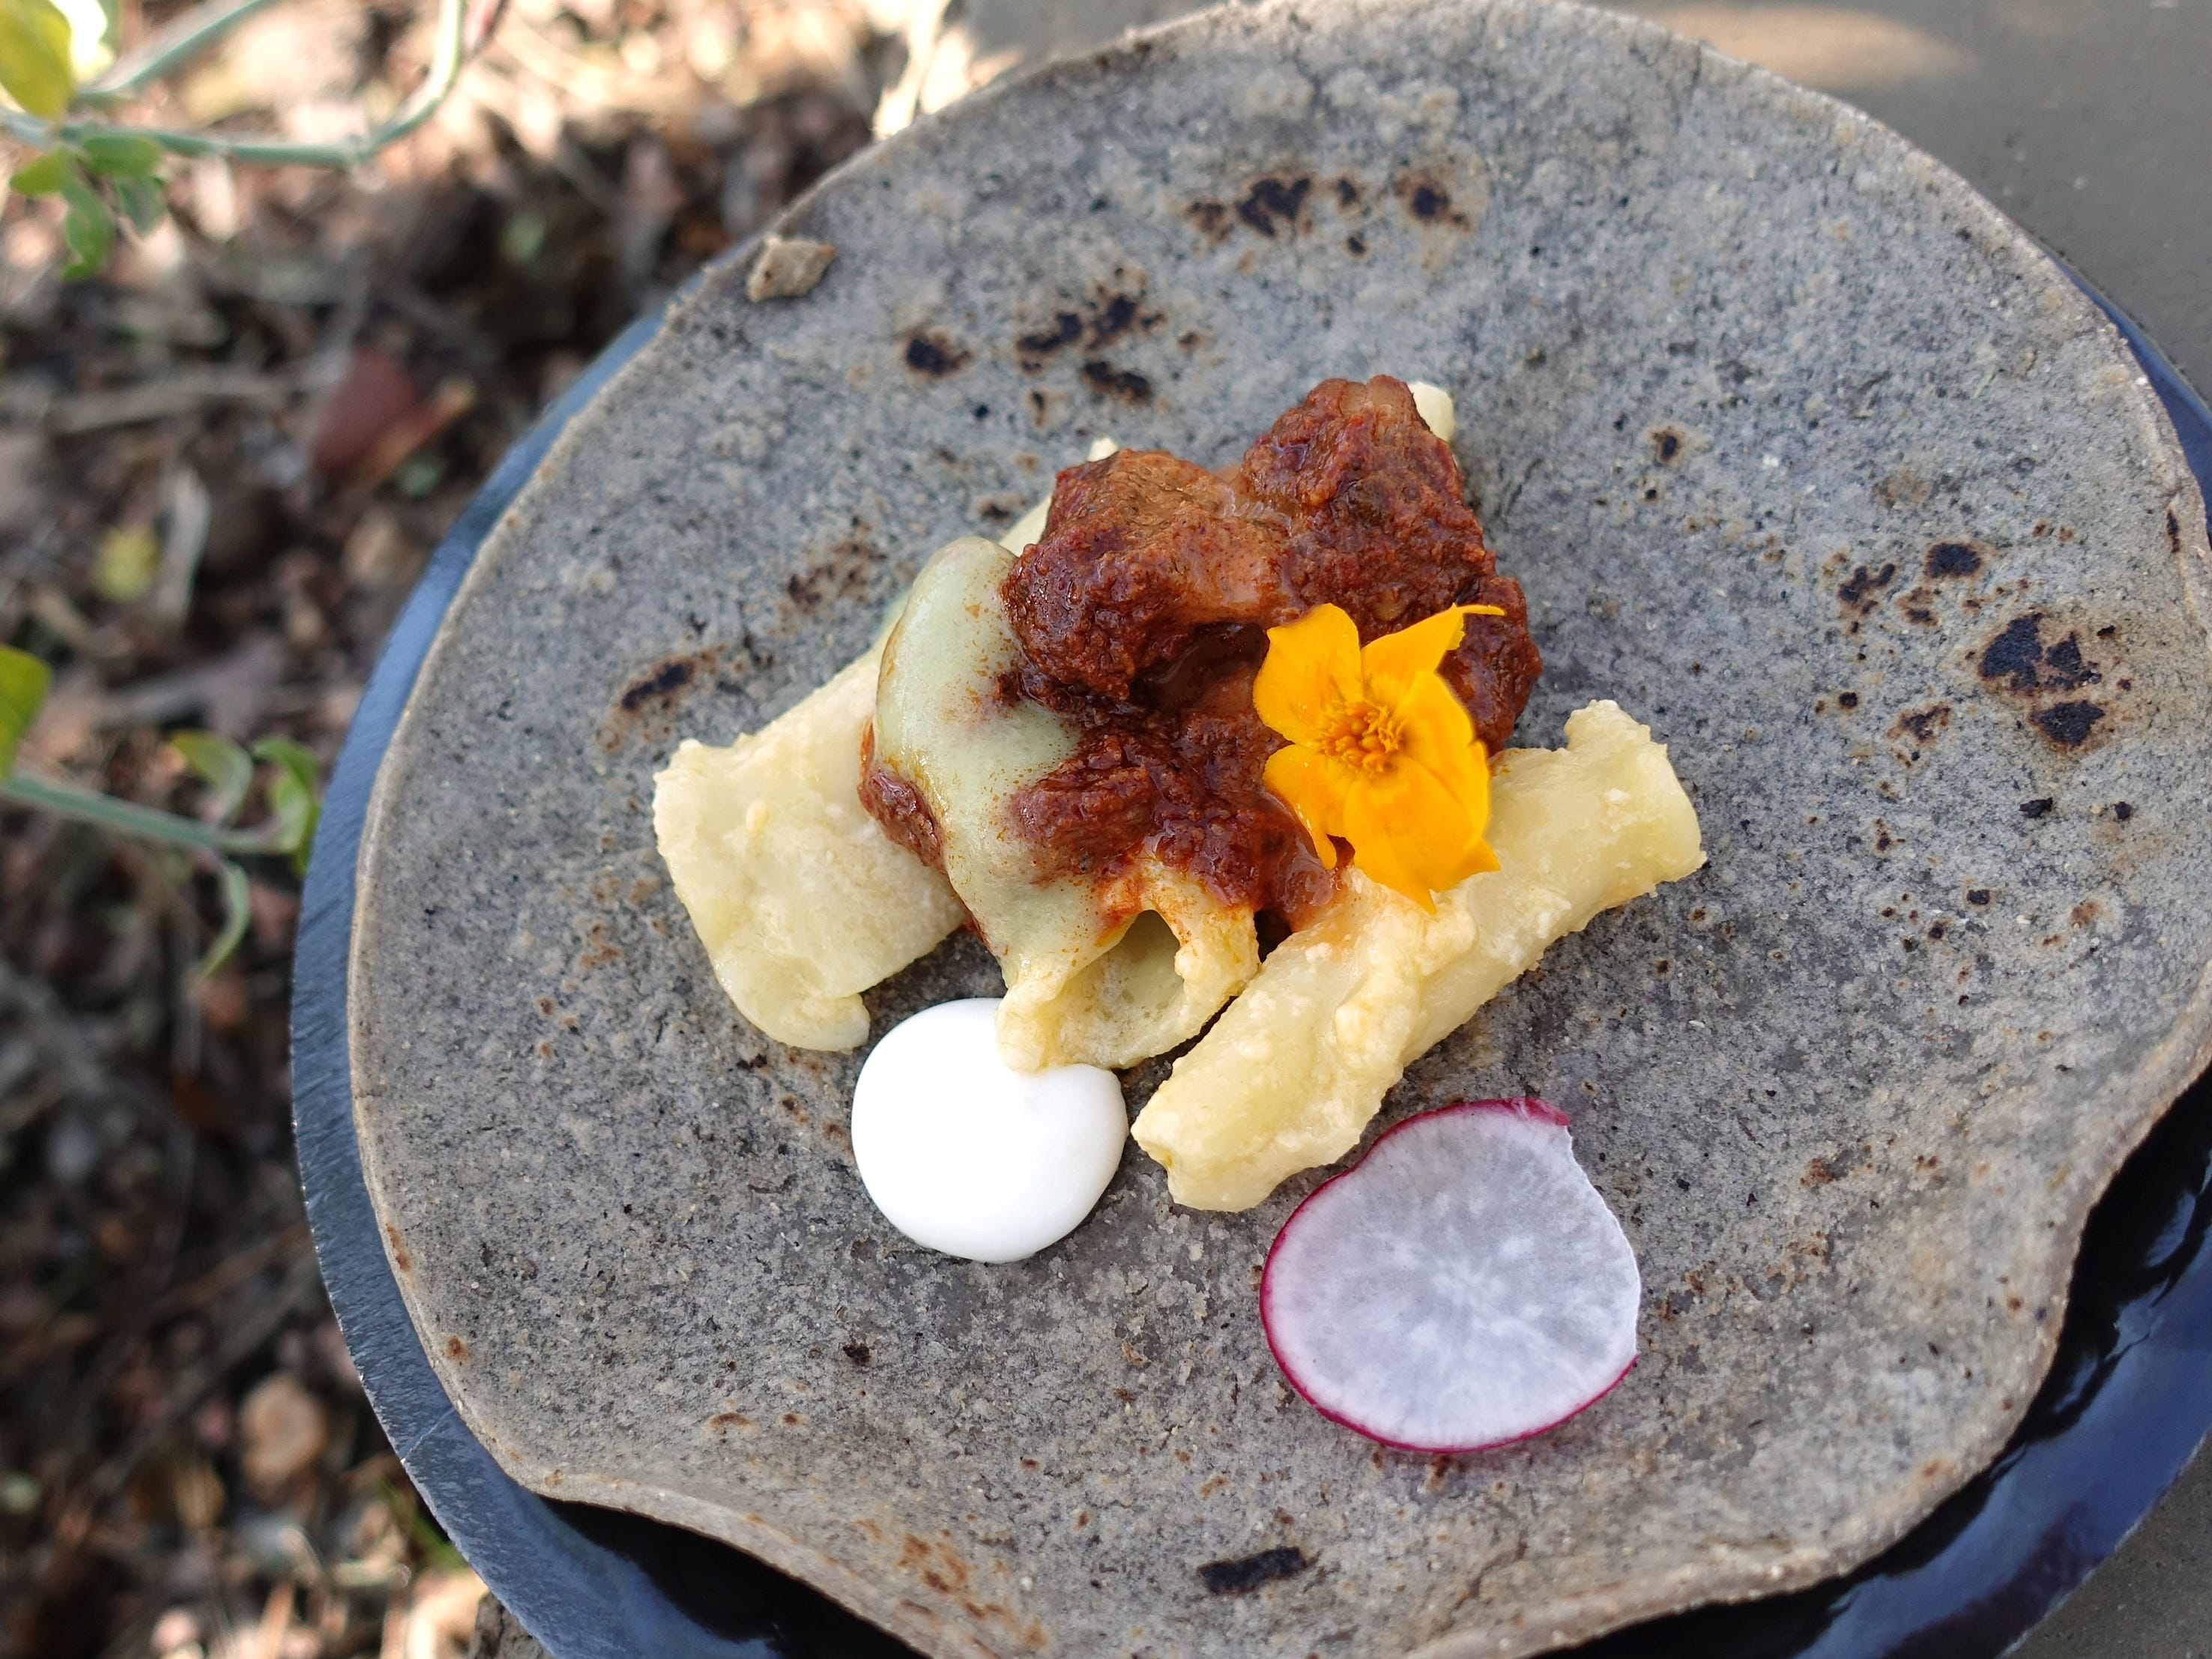 'Mac meet New Mexico' with blue corn tortilla, mac and cheese, carne adovada, romesco, lime crema, avocado and tomatillo from Social Hall at the Devour Culinary Classic at the Desert Botanical Garden in Phoenix.